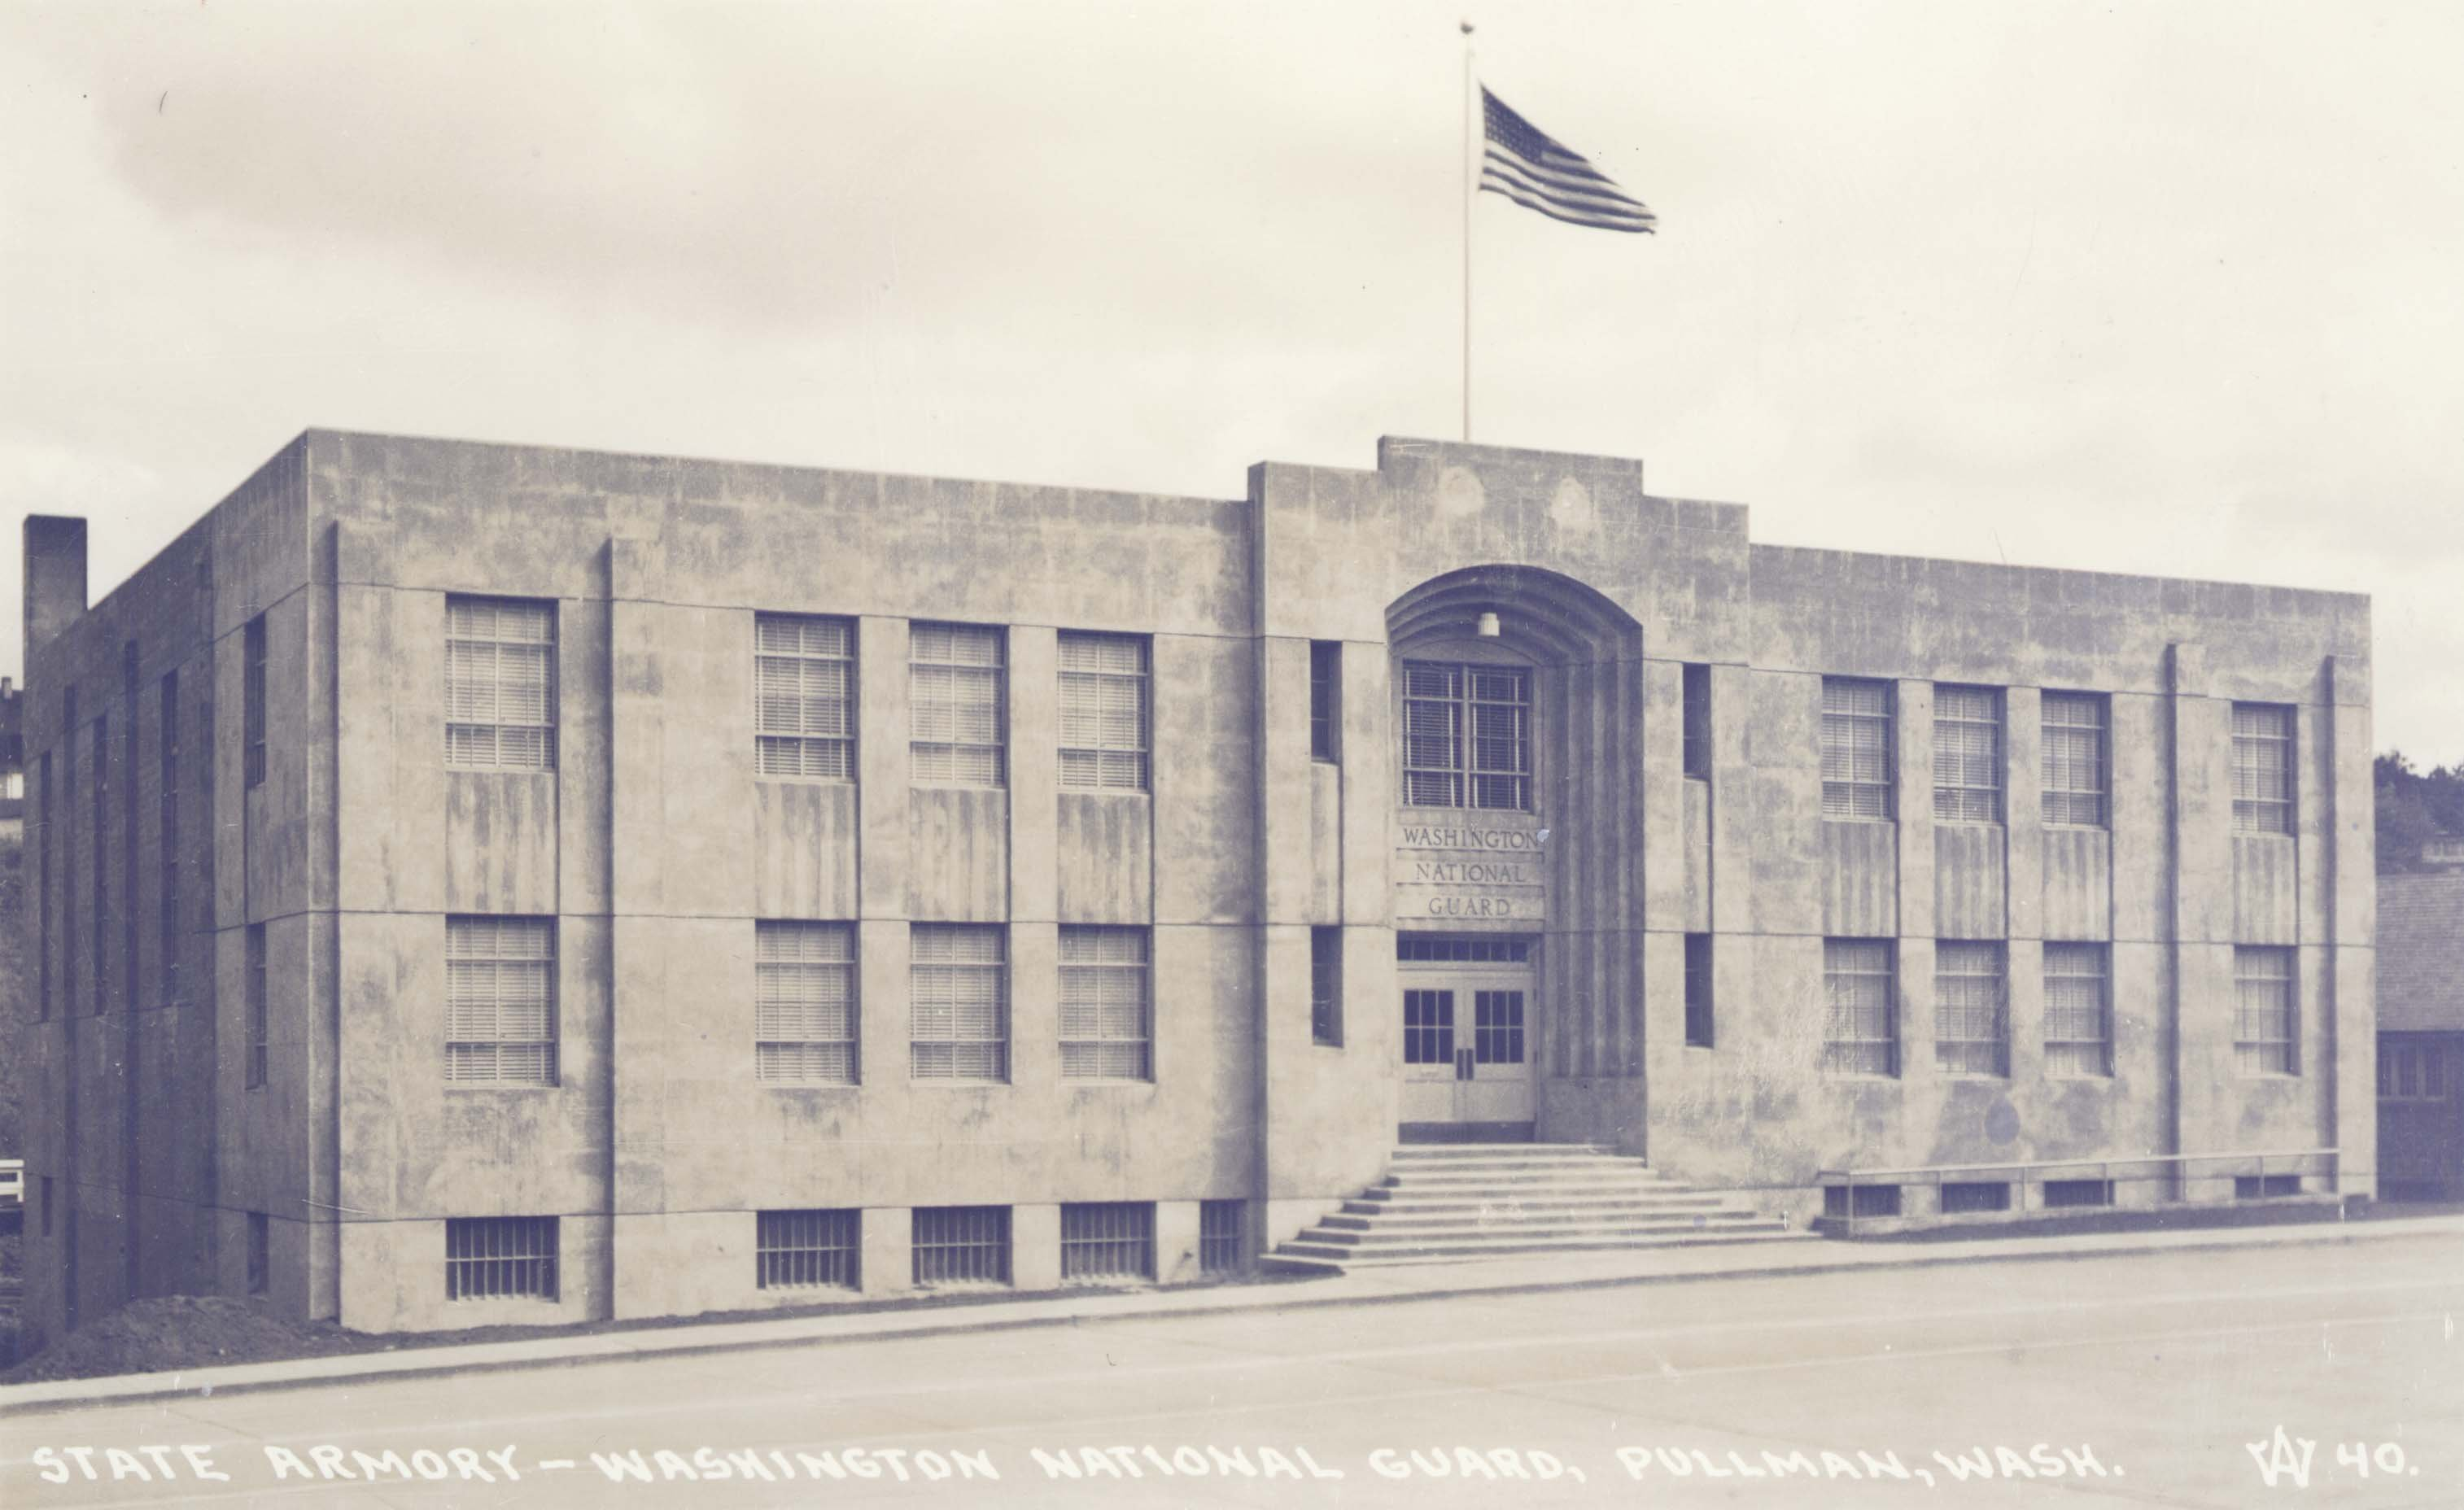 Postcard image of the State Armory - Washington National Guard Building. Courtesy WSU Special Collections.